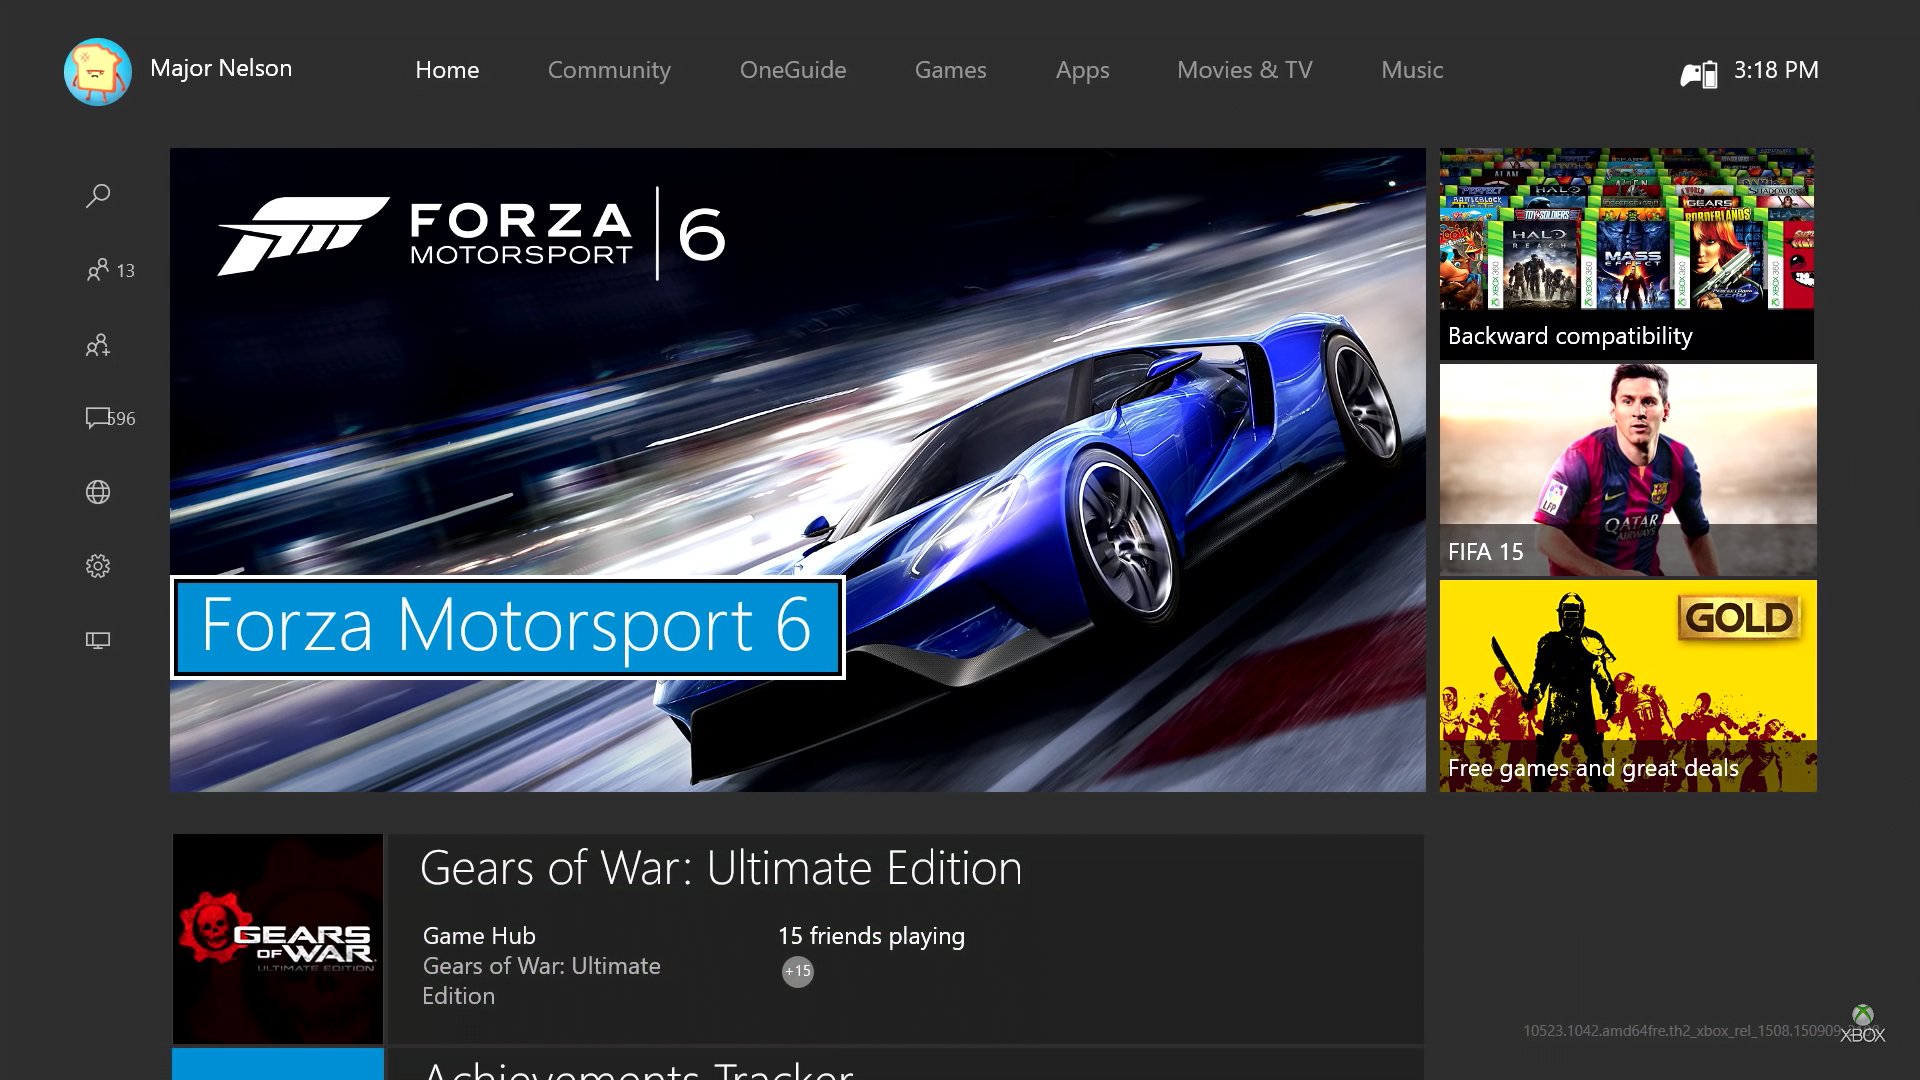 New Xbox One Experience arriving soon for all preview members